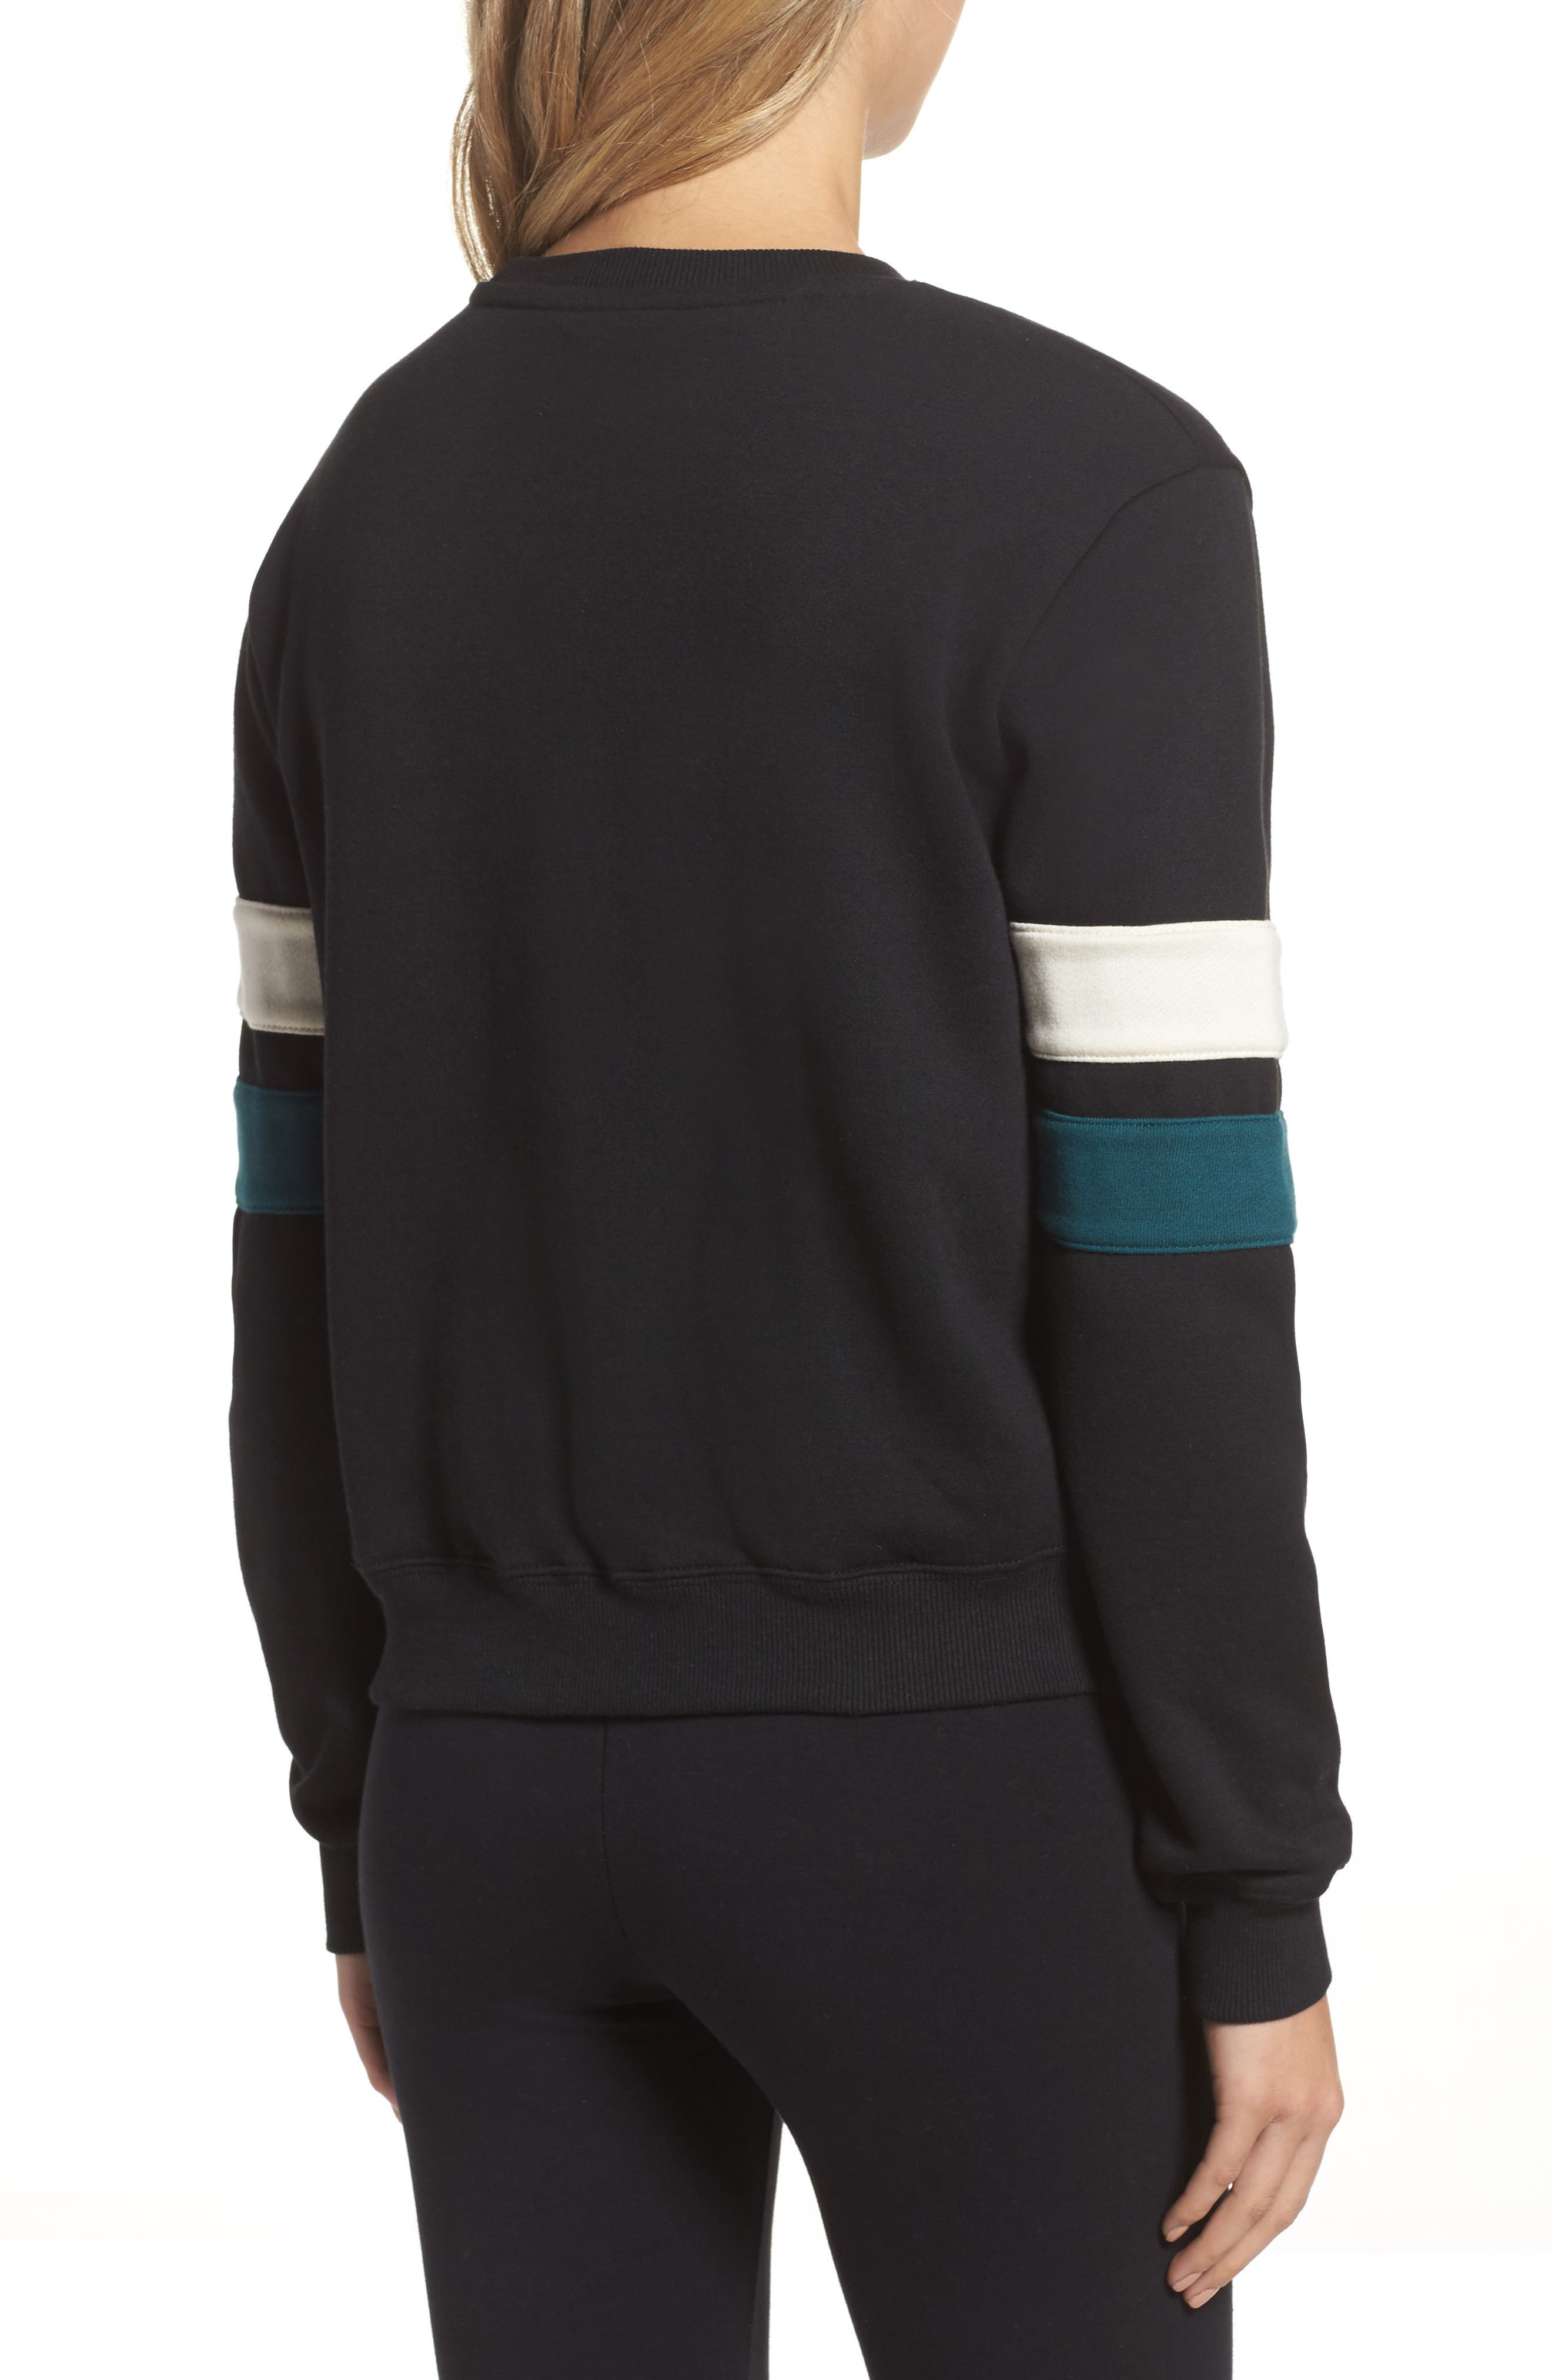 Newton Sweatshirt,                             Alternate thumbnail 2, color,                             Black/ Deep Teal/ Gardenia